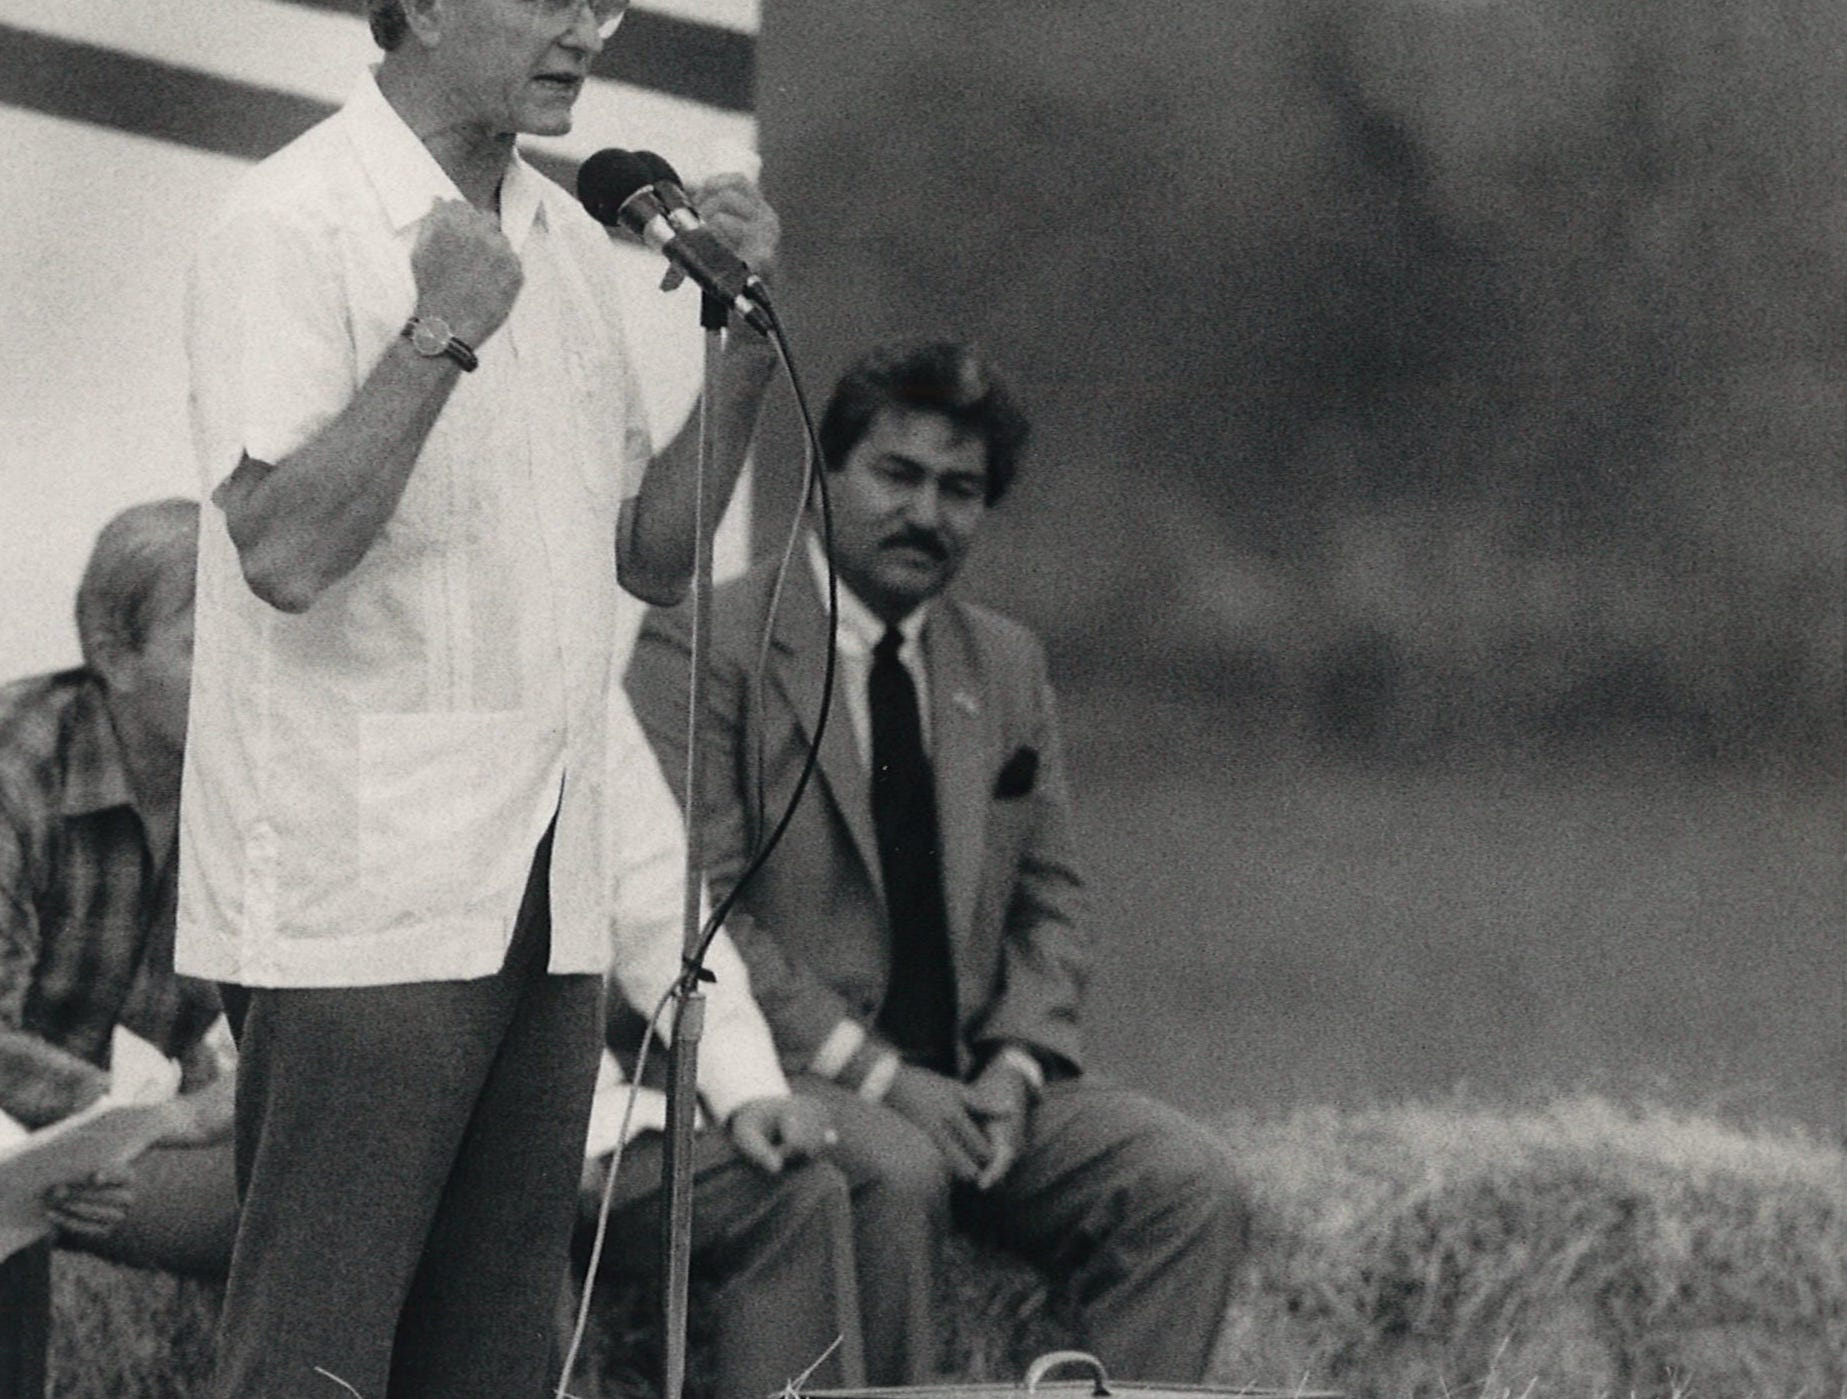 Vice president George Bush speaks to a crowd in South Texas at the Salinas Ranch in Hebbronville, Texas on Sept. 14, 1985.